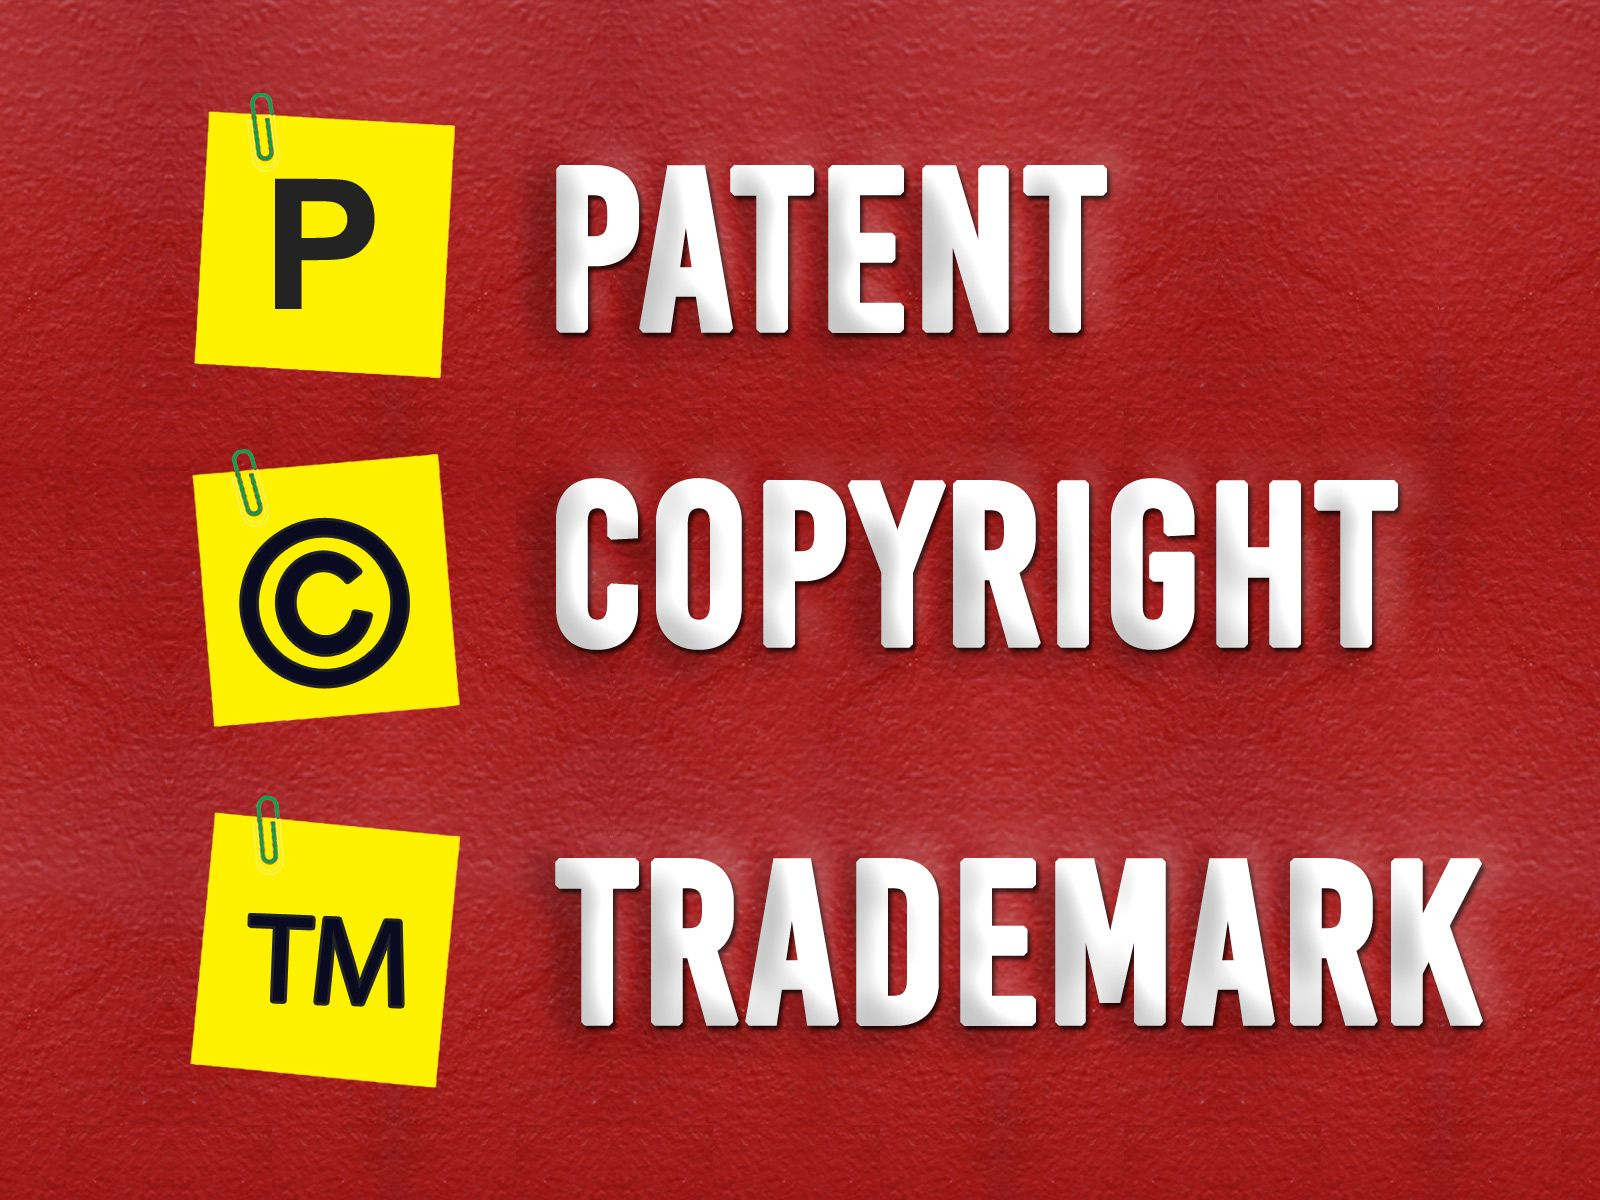 What Is The Best Way To Protect Your Invention Idea Should You Copyright Patent Or Trademark It Read More On Our Blog Patent Inventions Trademark